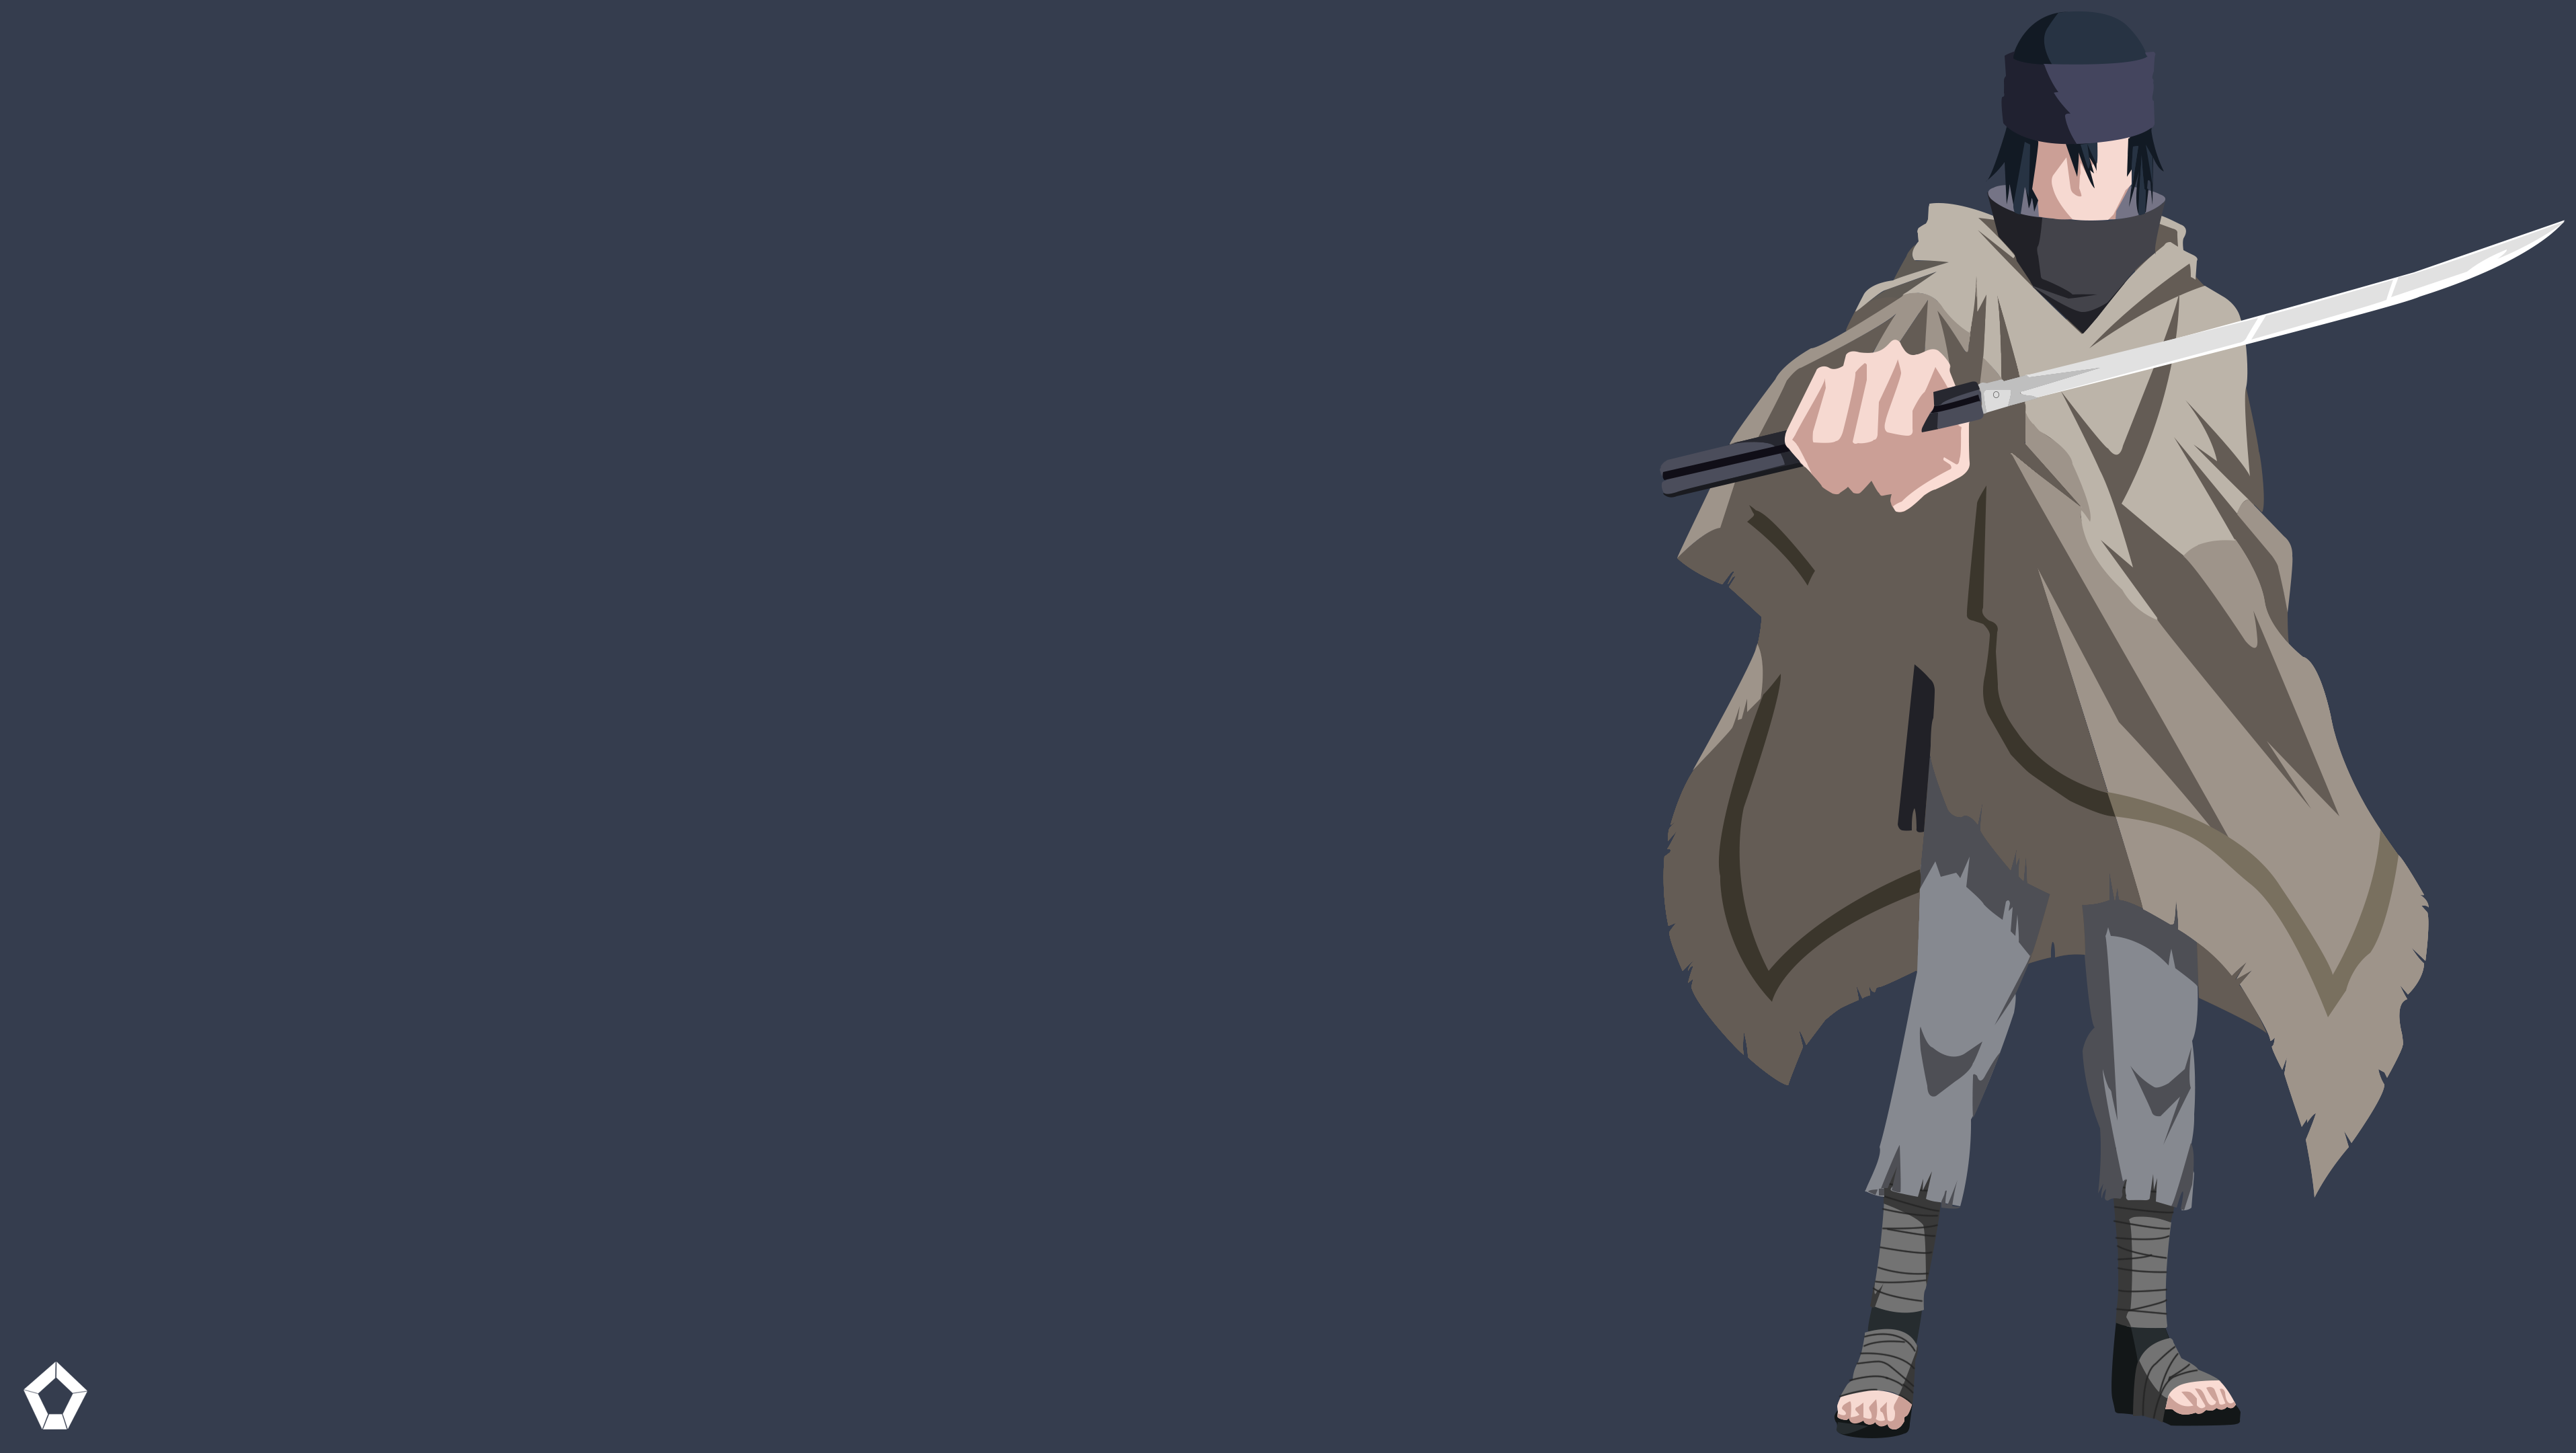 Sasuke Uchiha Wallpaper Naruto Minimalist Wallpaper 4k